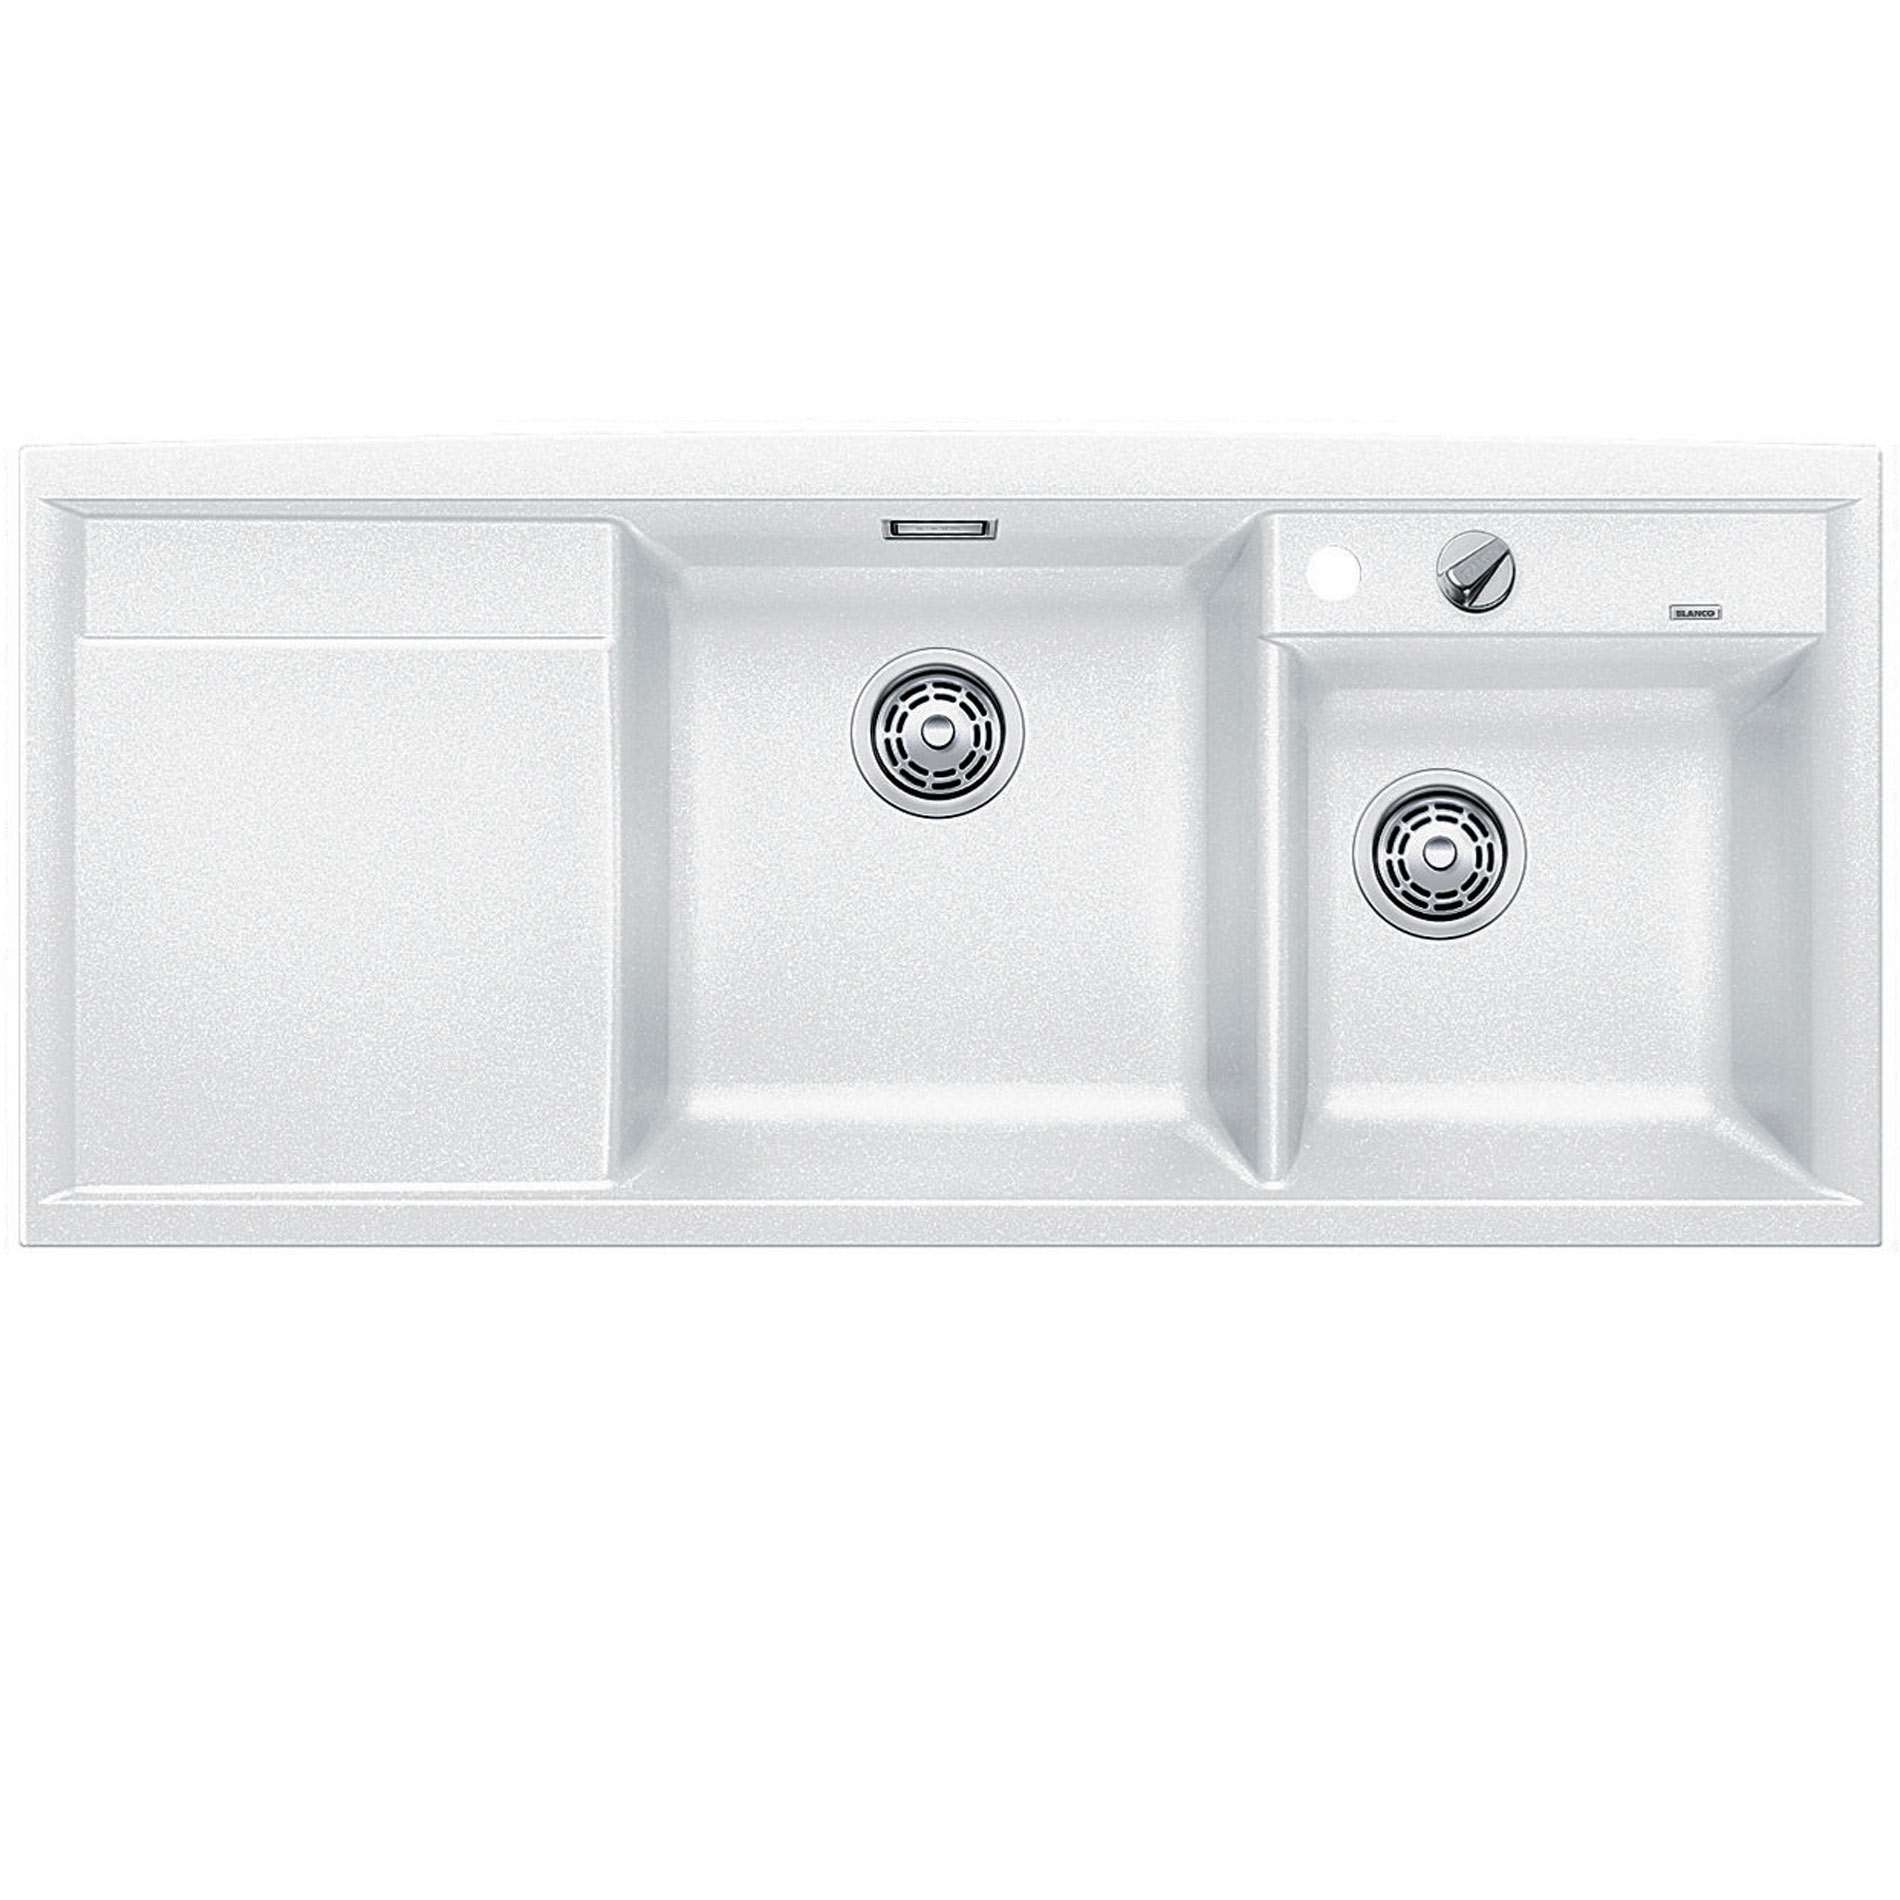 White Silgranit Sink : Blanco: Axia II 8 S White Silgranit Sink - Kitchen Sinks & Taps